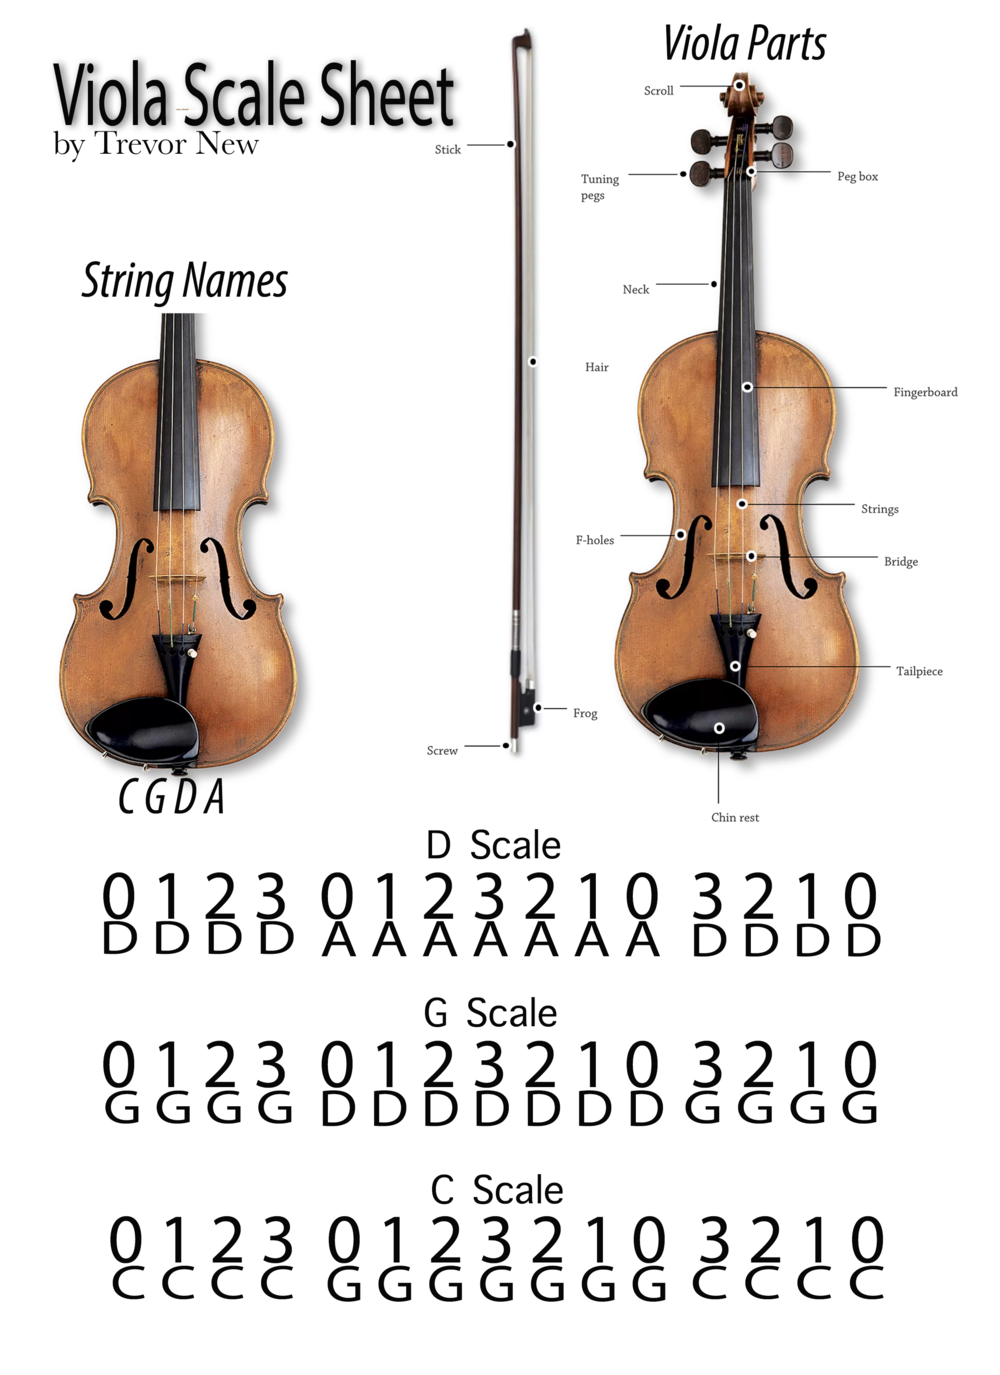 Viola Scale Sheet v1 .png